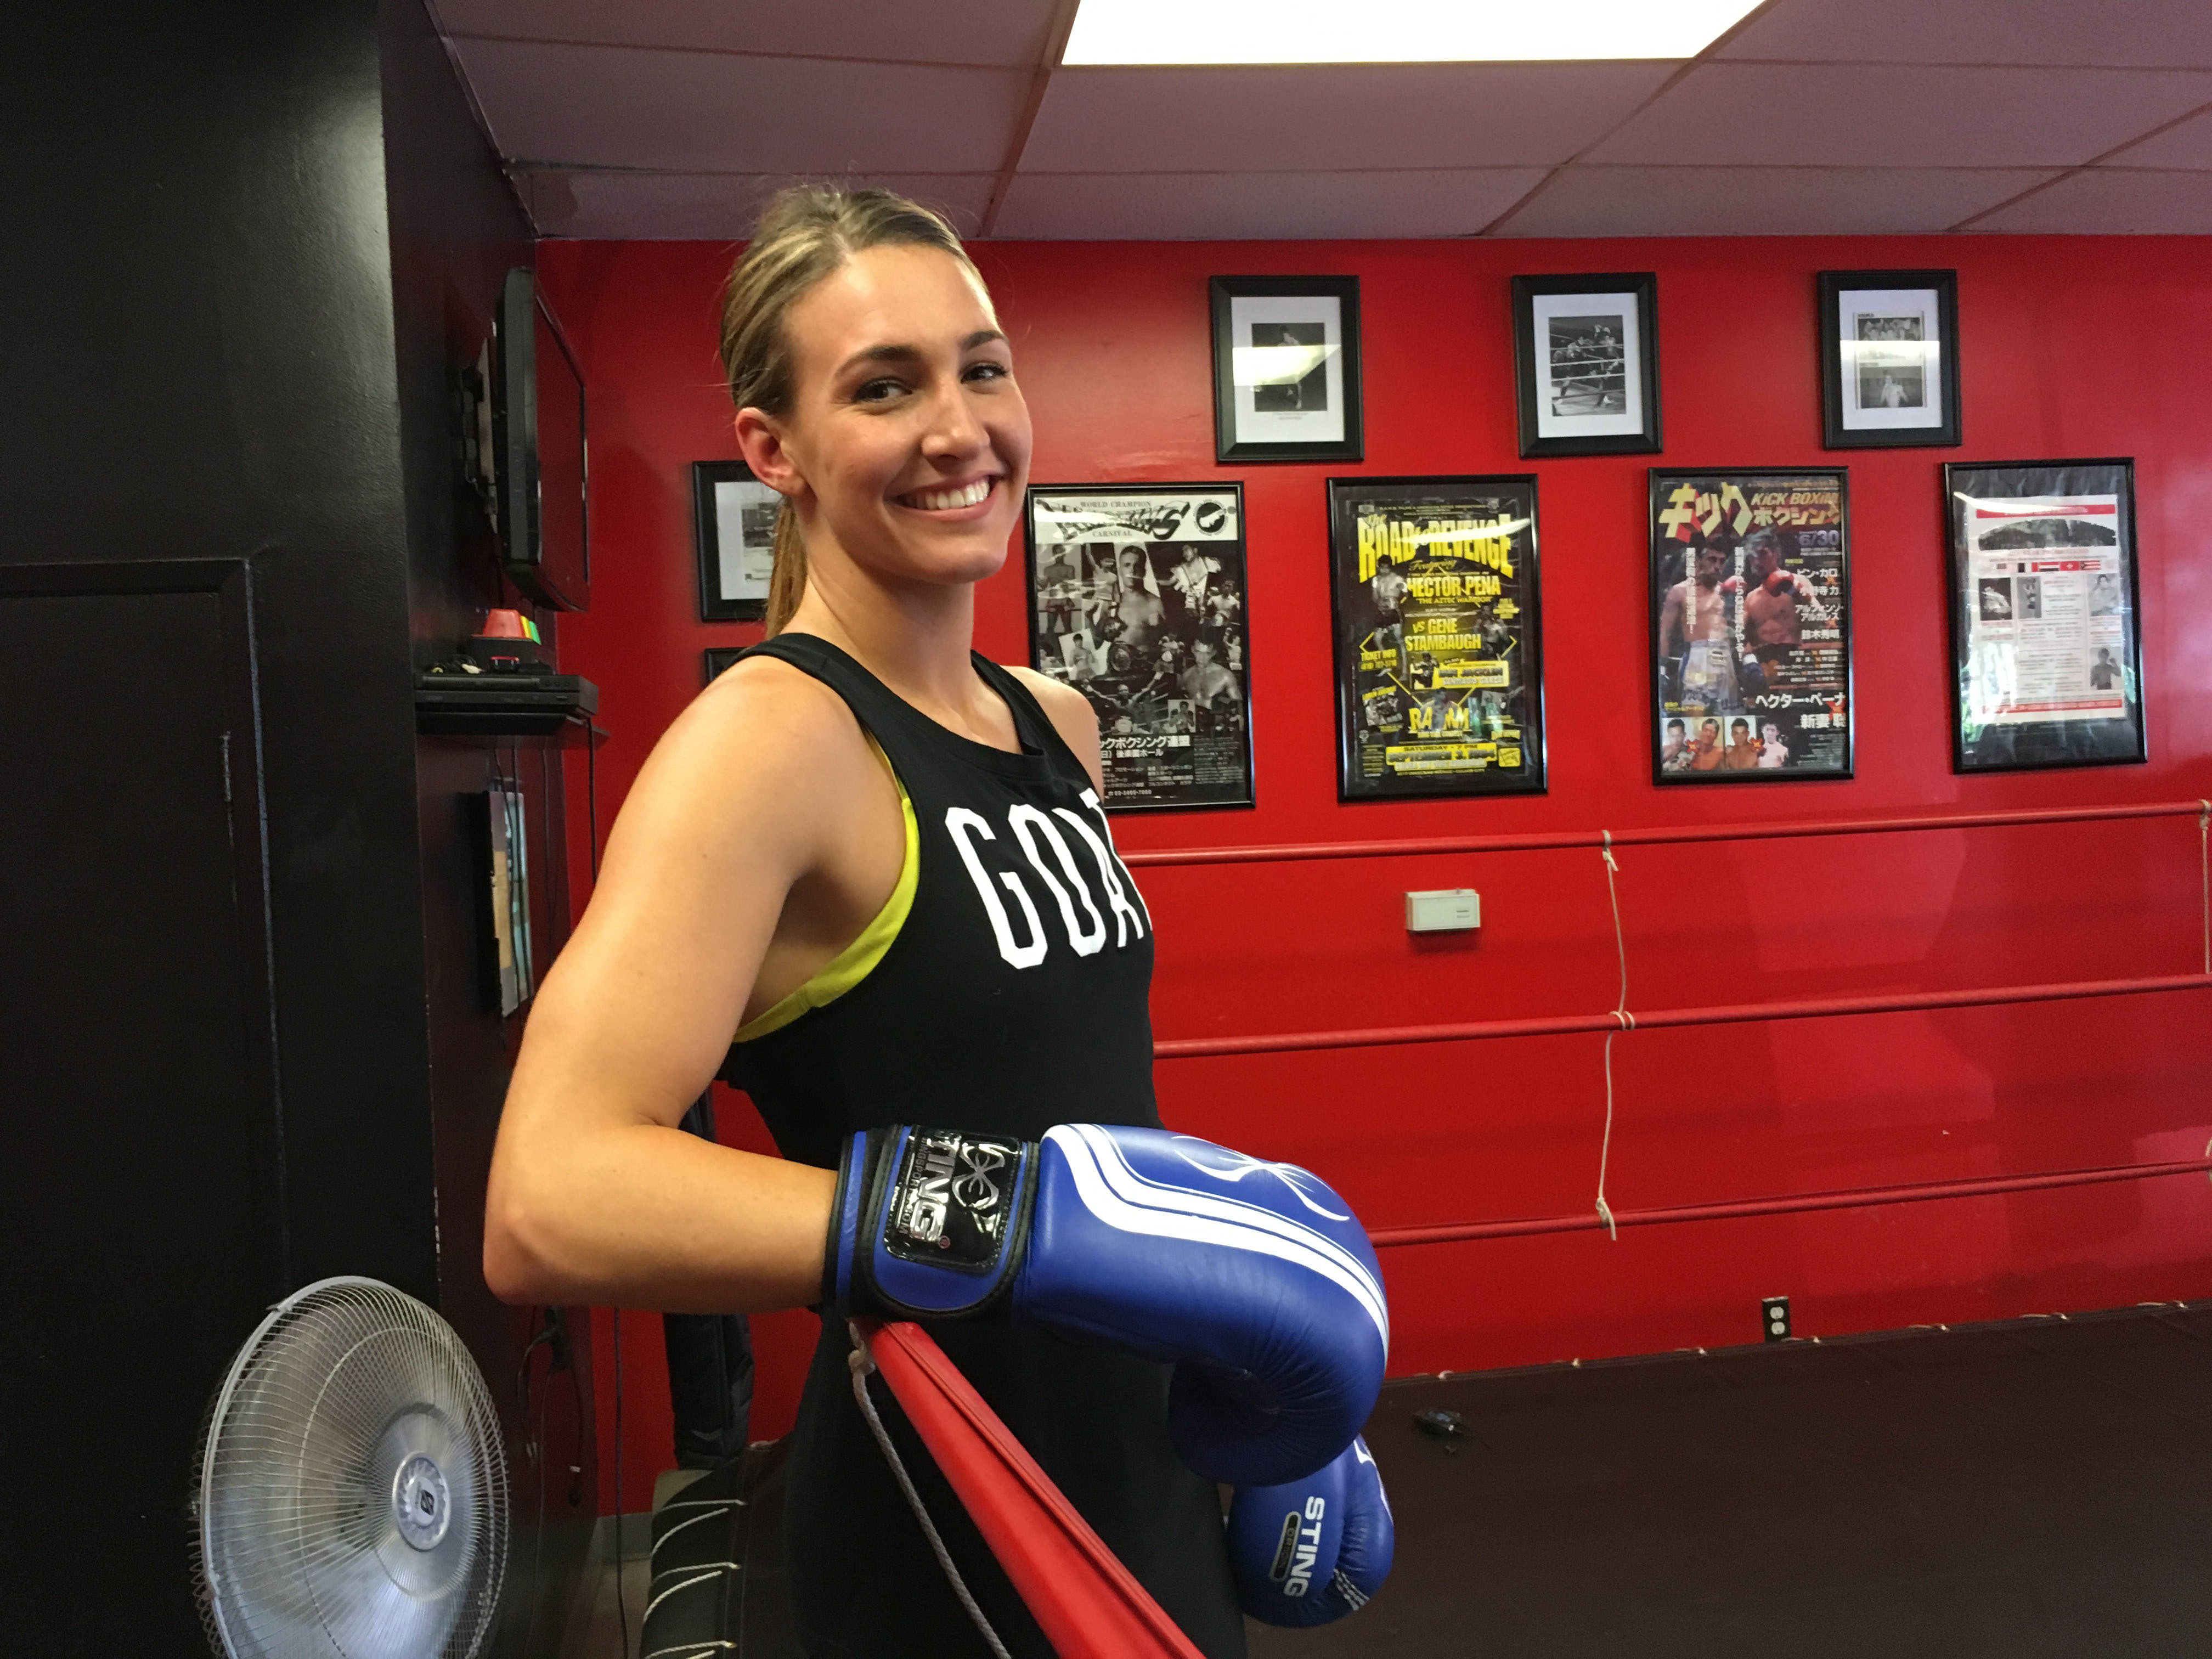 In this June 13, 2016 photo, U.S. Olympic boxer Mikaela Mayer poses at a gym in West Hills, Calif., where she is preparing for her trip to the Rio de Janeiro Olympics. (AP Photo/Greg Beachem)